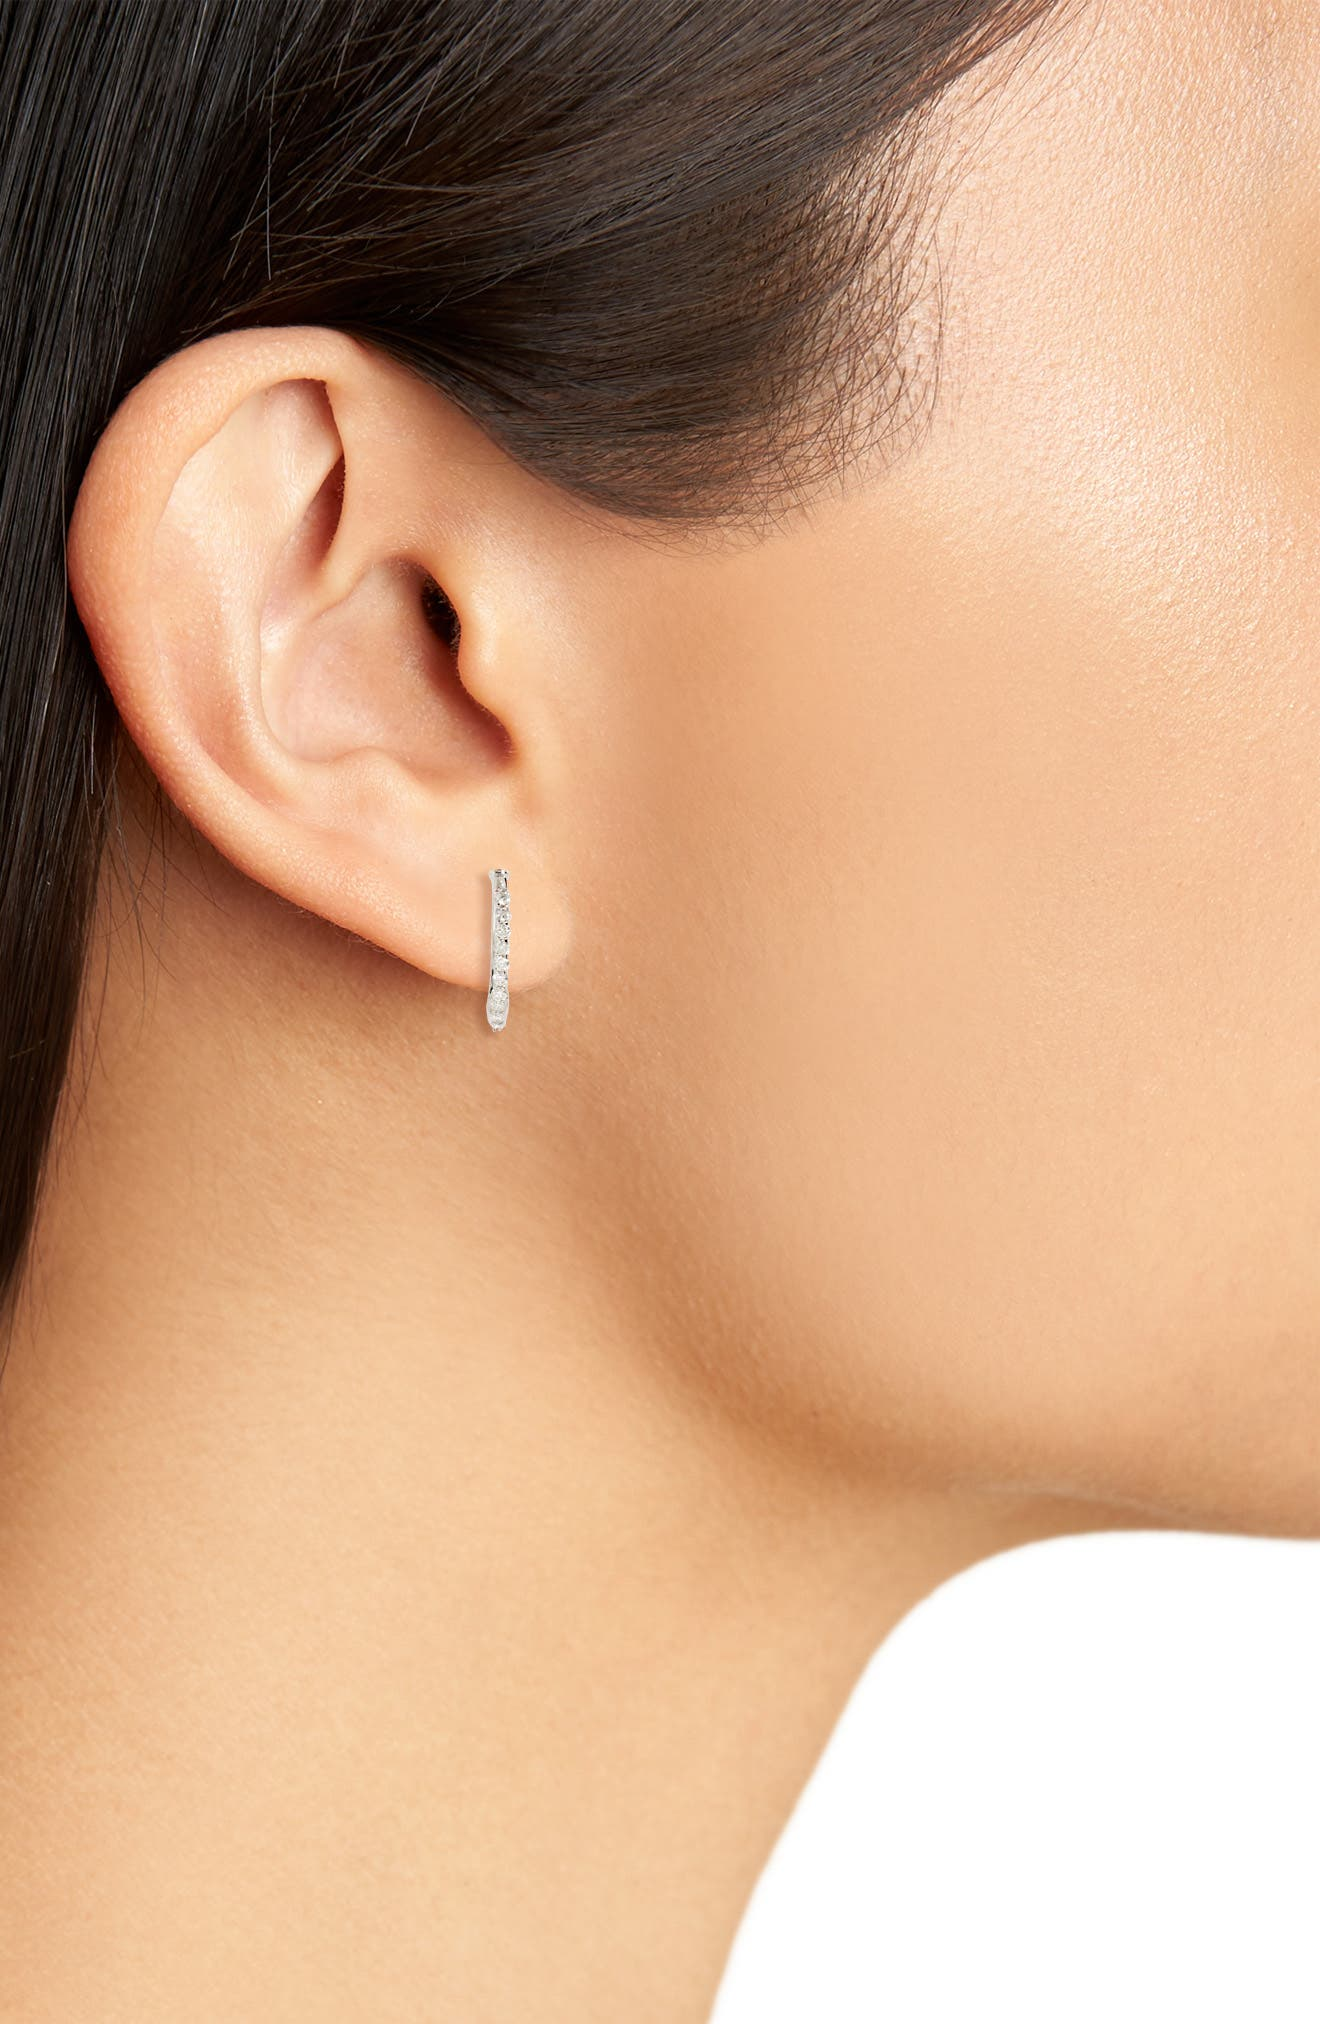 Small Diamond Hoop Earrings,                             Alternate thumbnail 3, color,                             711